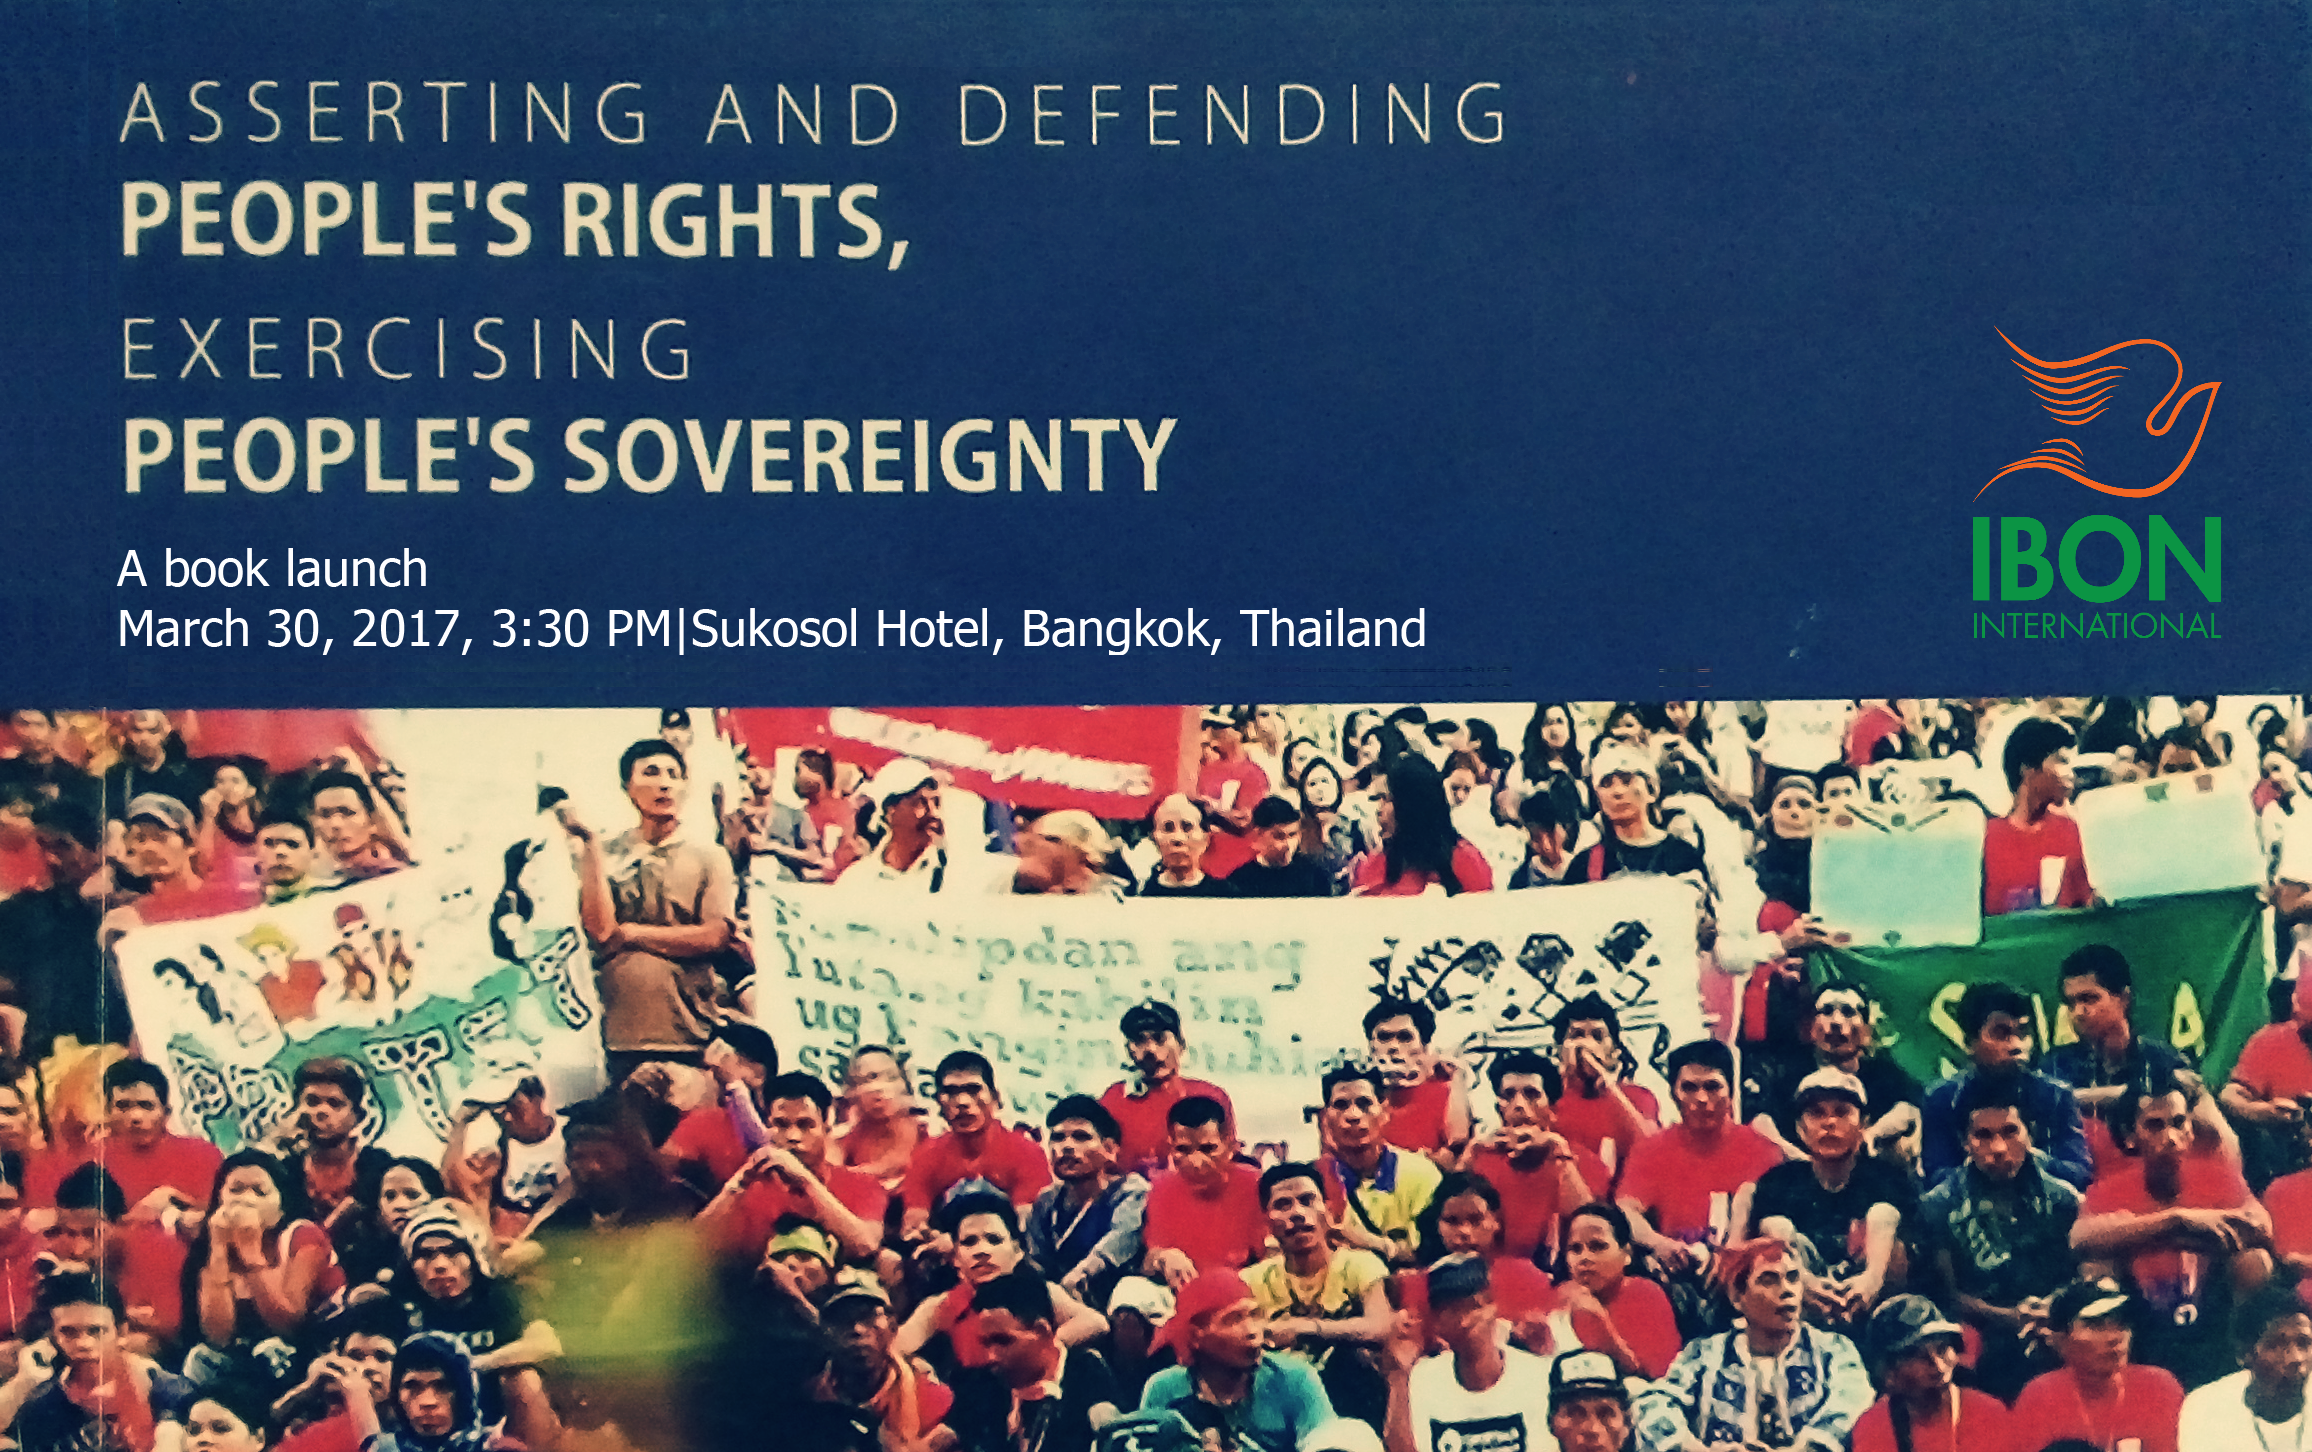 Launch of new book on People's Rights and People's Sovereignty